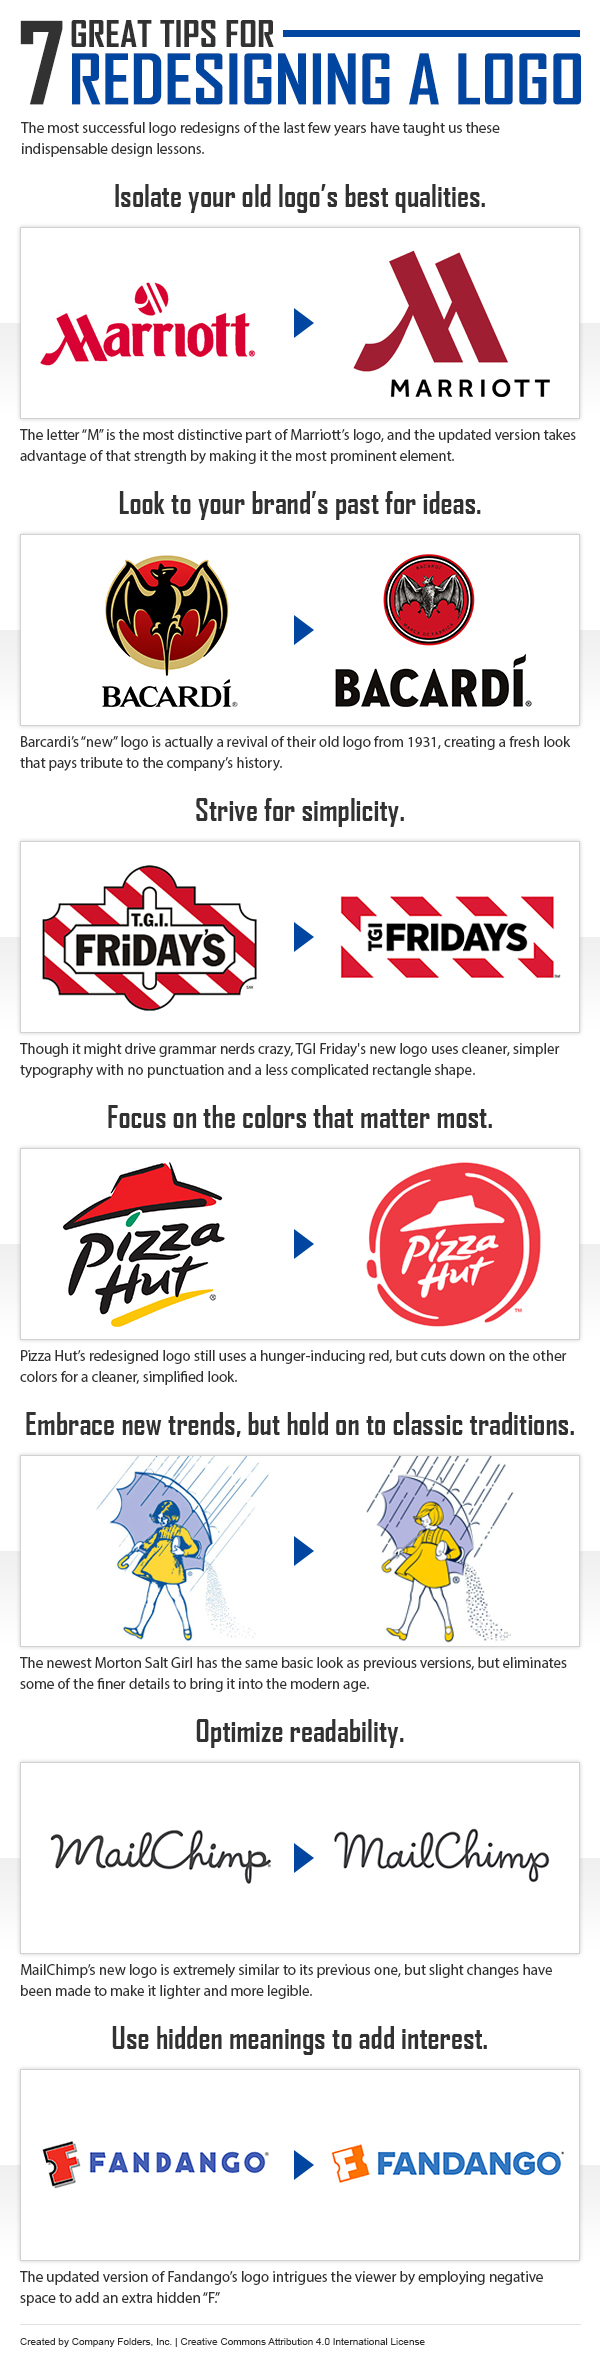 7 Tips for Redesigning Logos that Don't Suck!